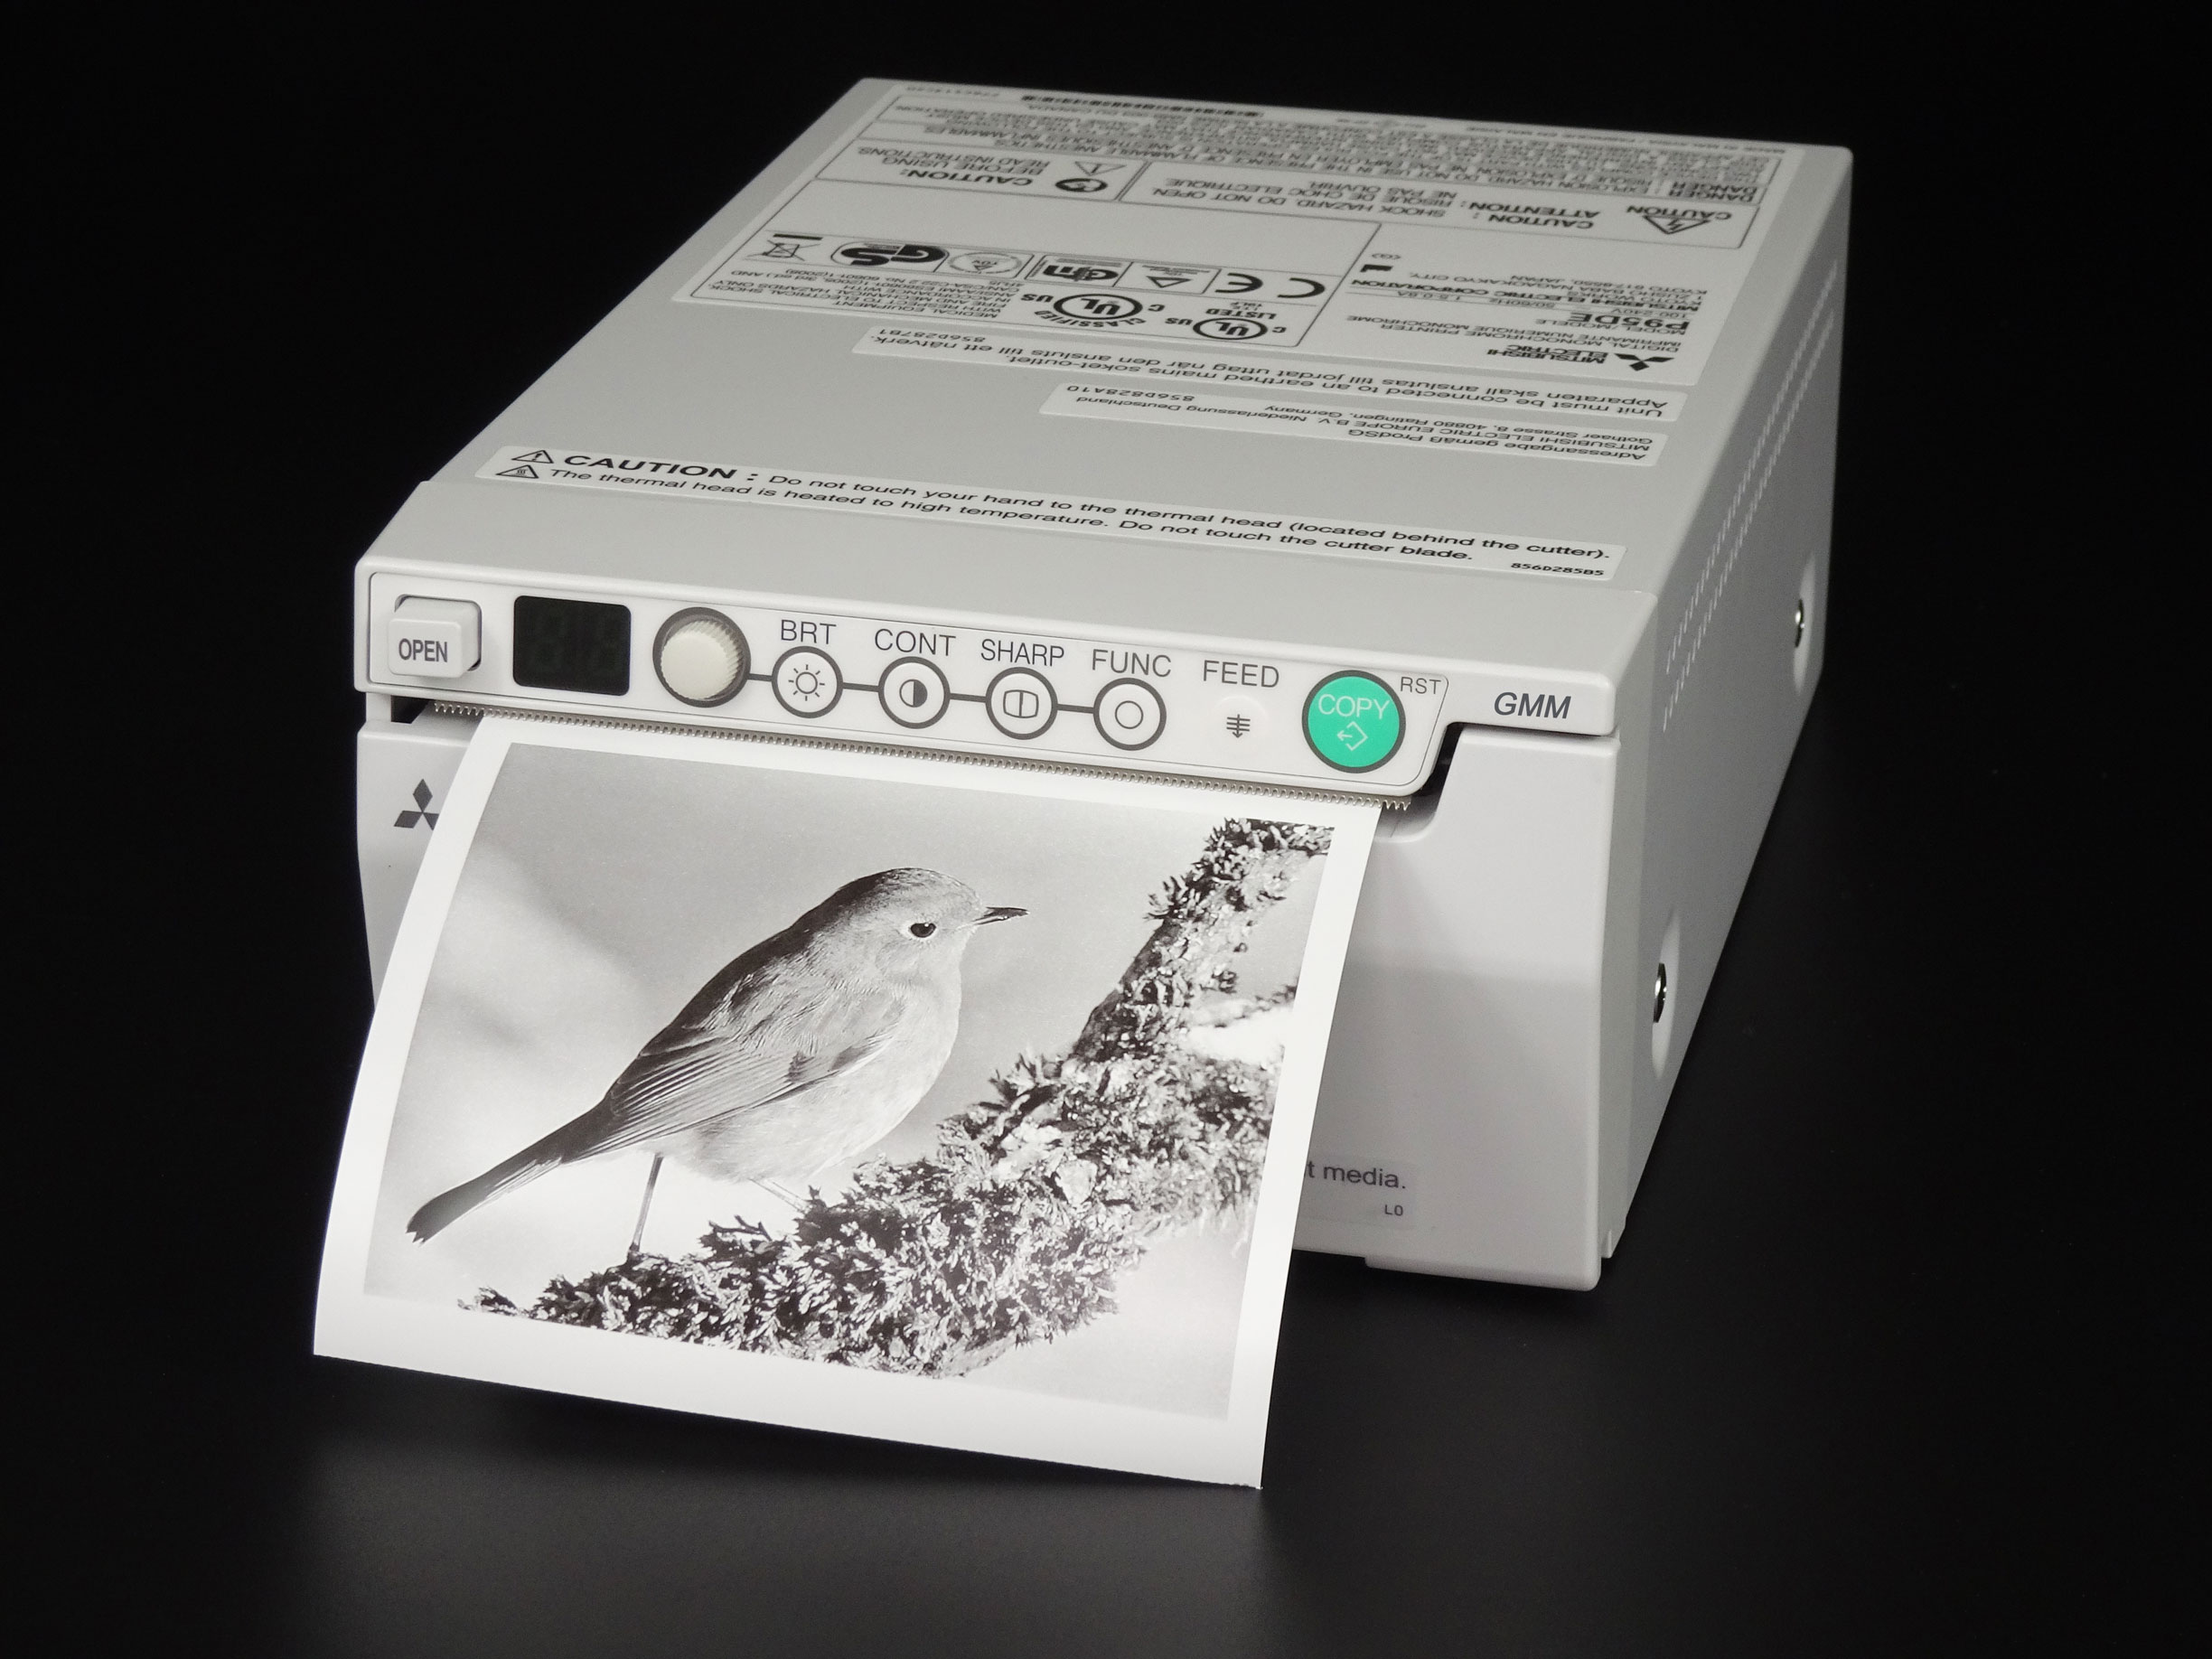 Mitsubishi Digital Monochrome Printer P95DW